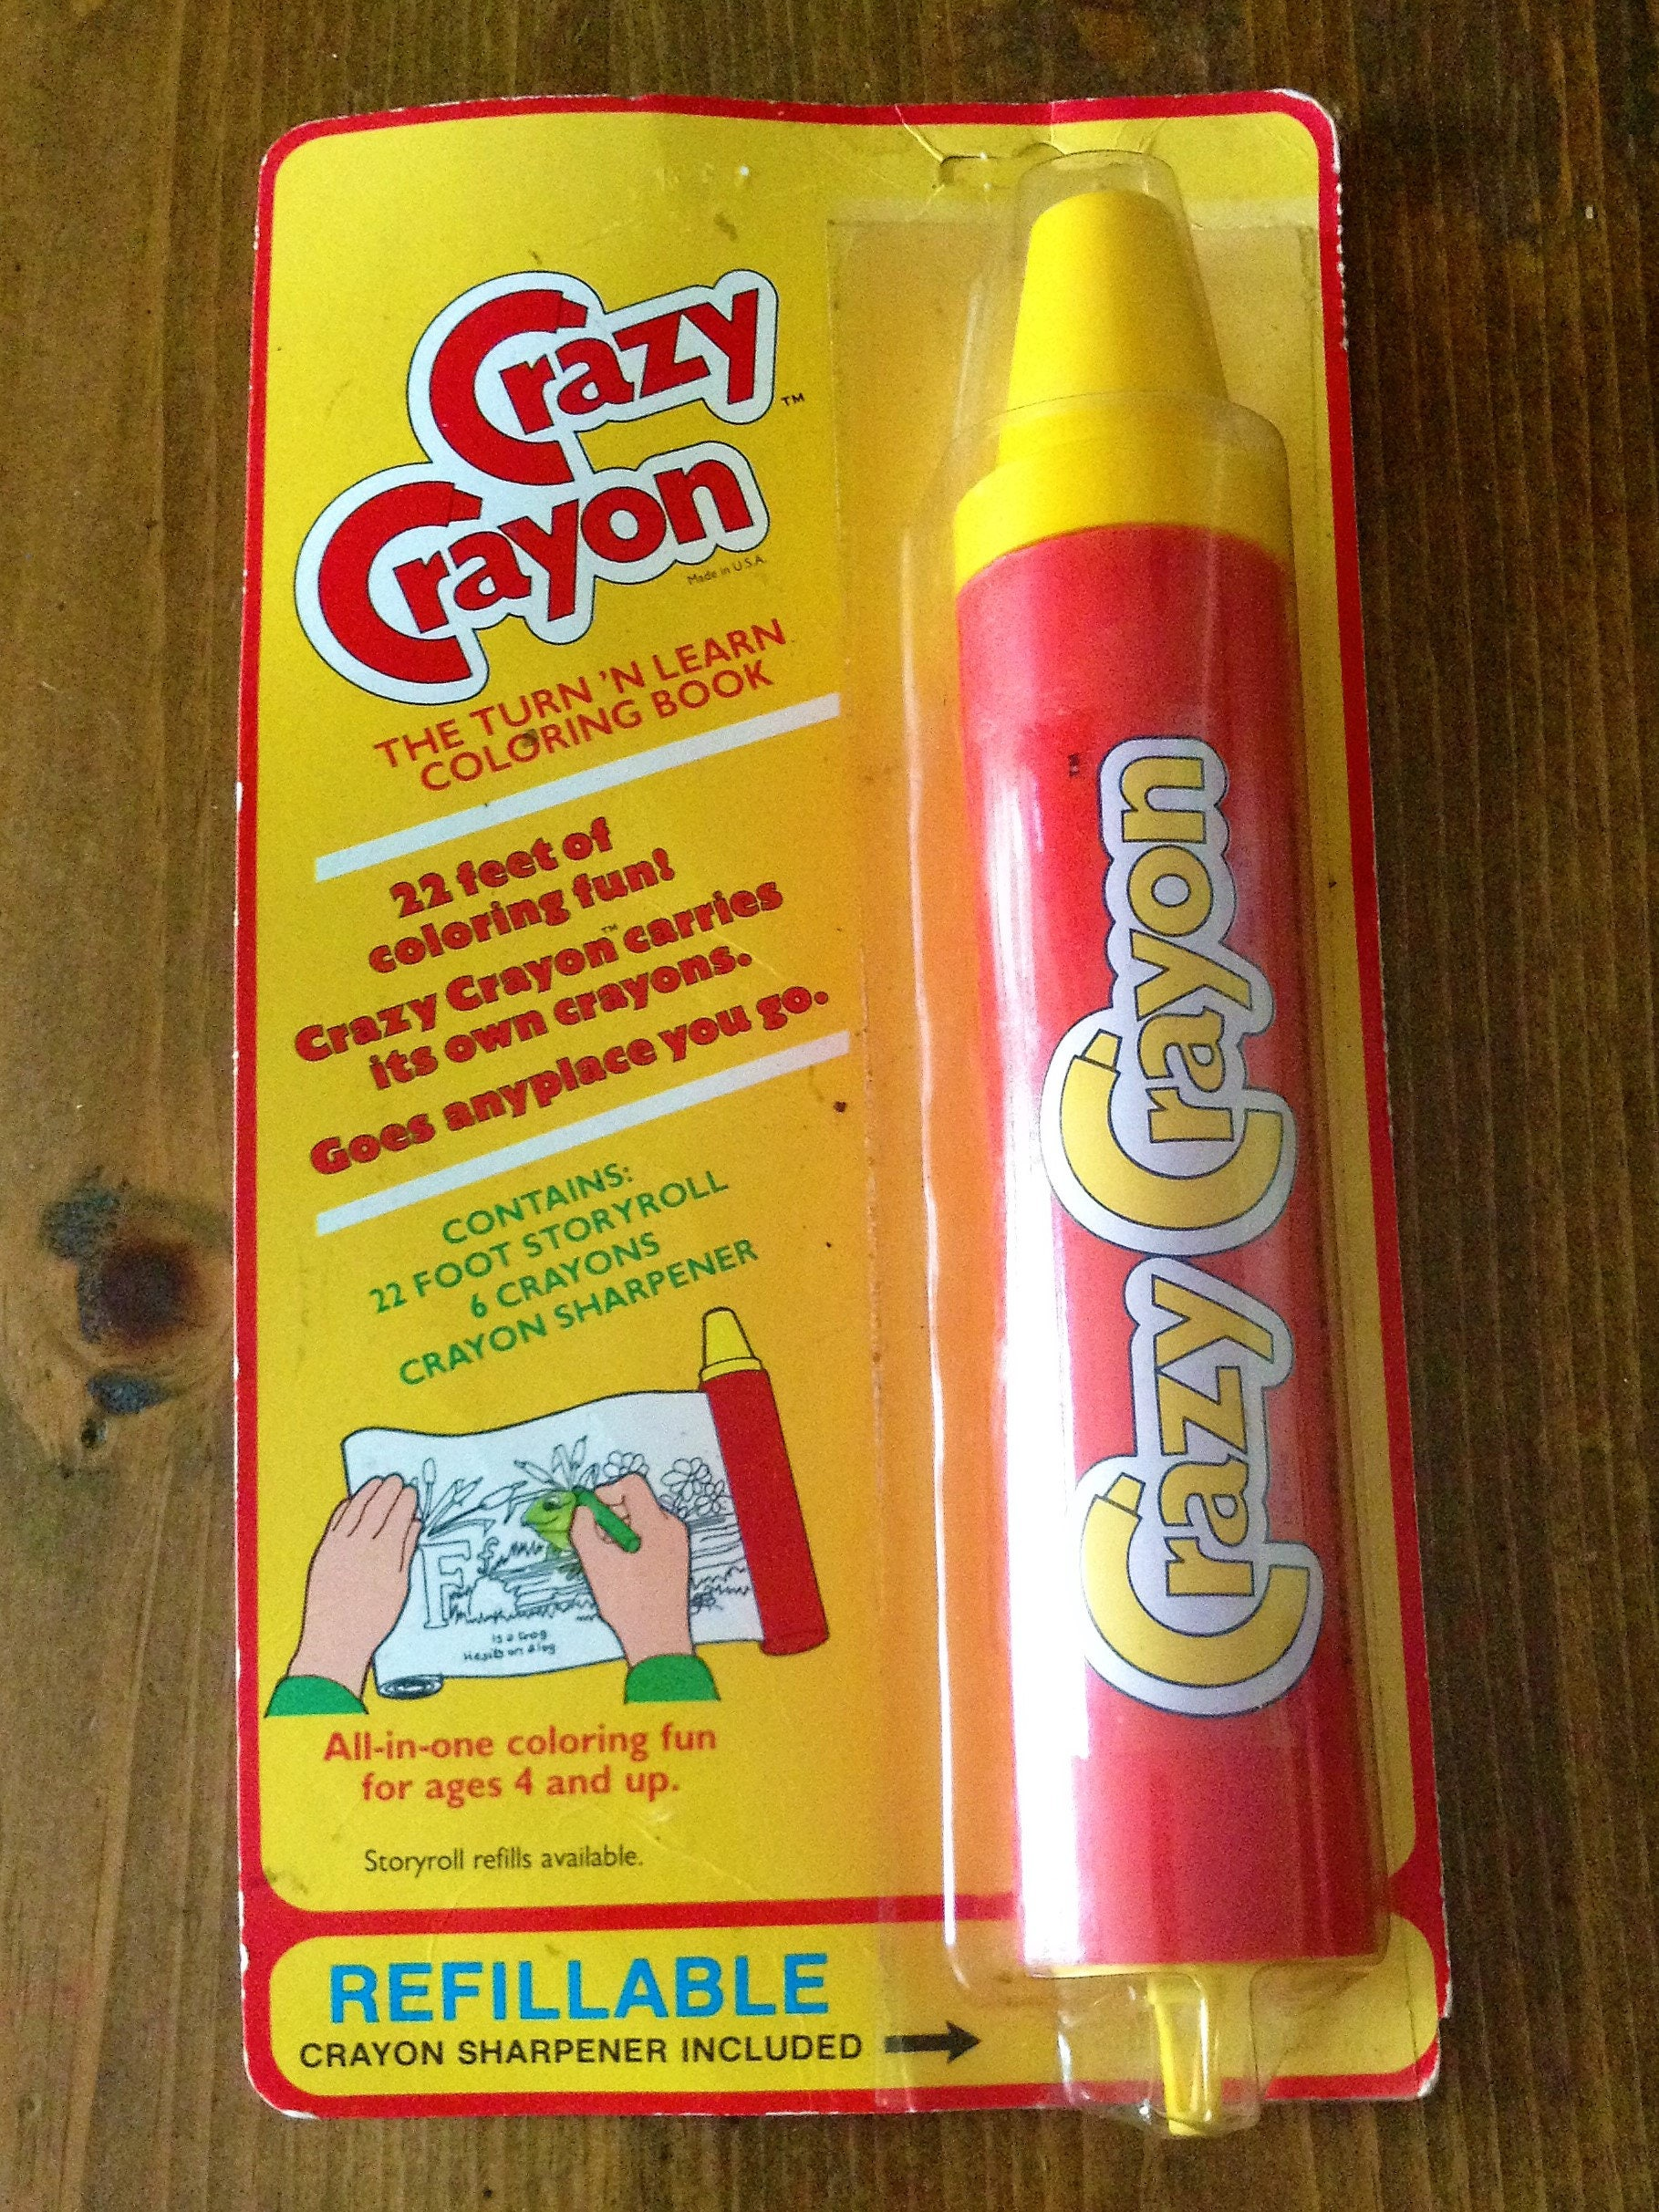 Vintage Crazy Crayon Turn & Learn Coloring Pages Toy Book | Etsy